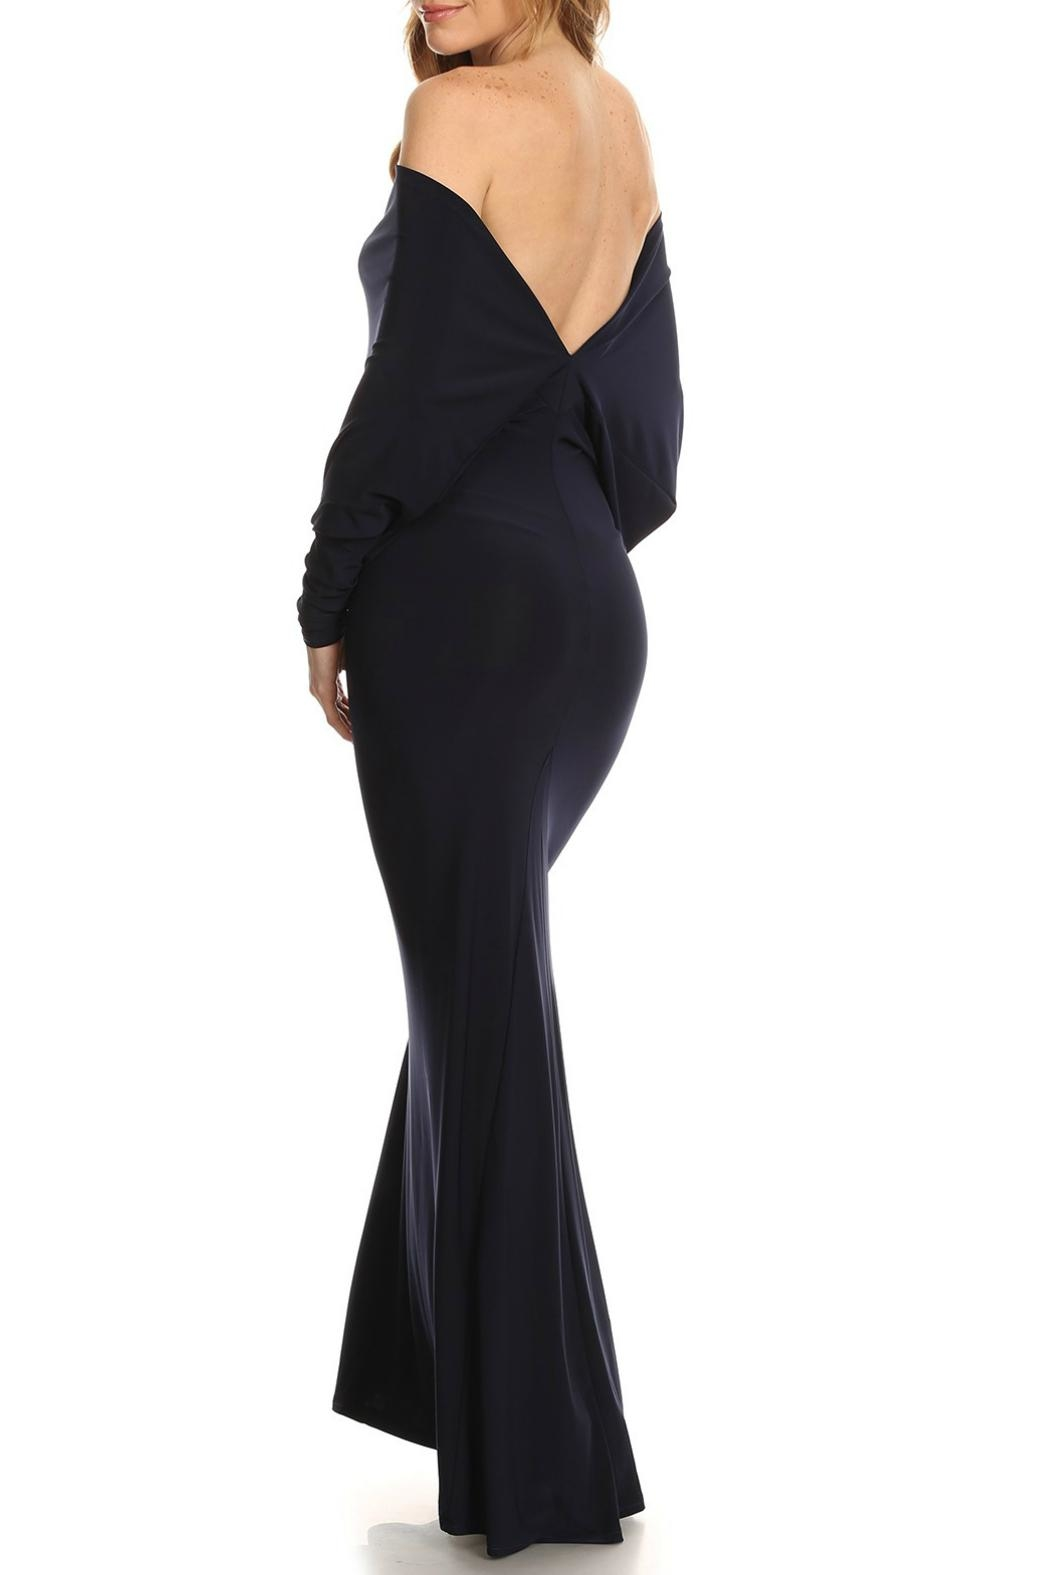 Karen T Designs Low Back Maxi - Front Full Image